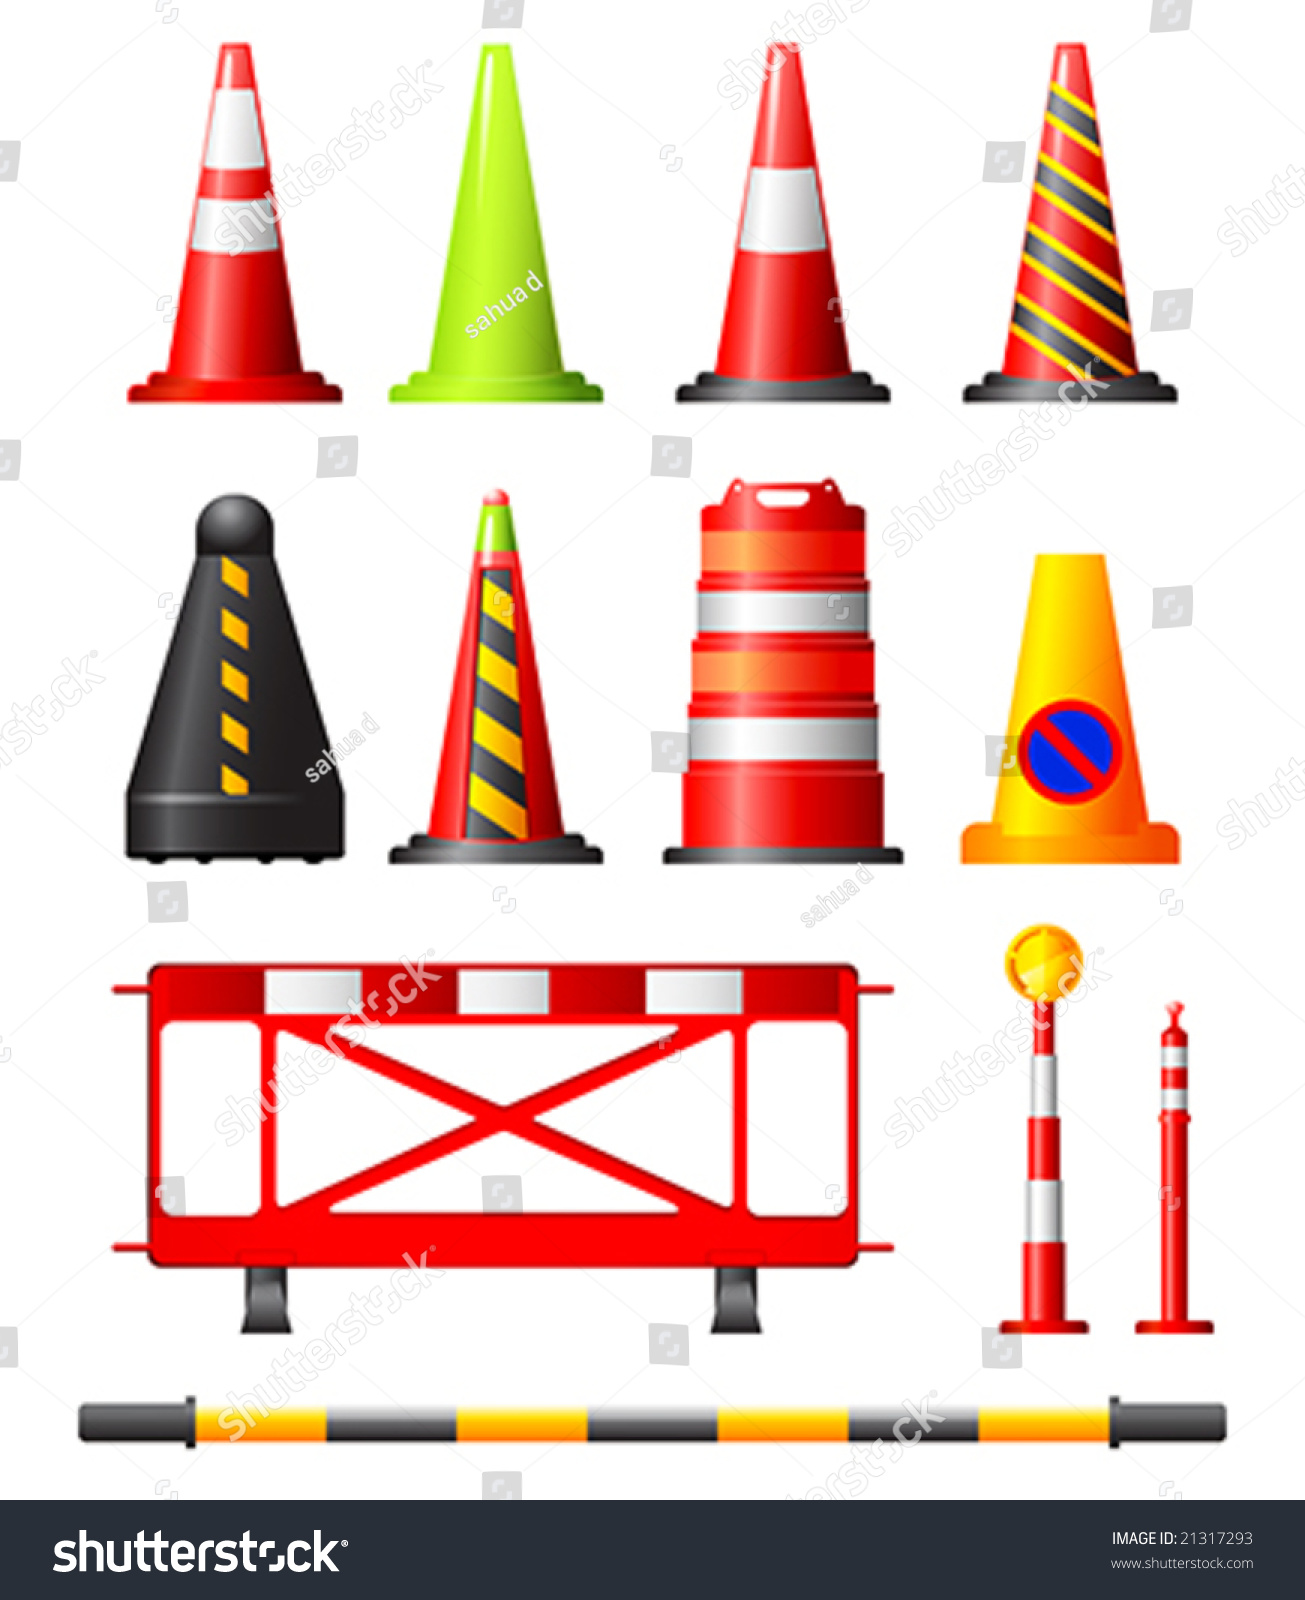 Road Barricade Signs Stock Vector Collection Of Different Traffic Cones Drums